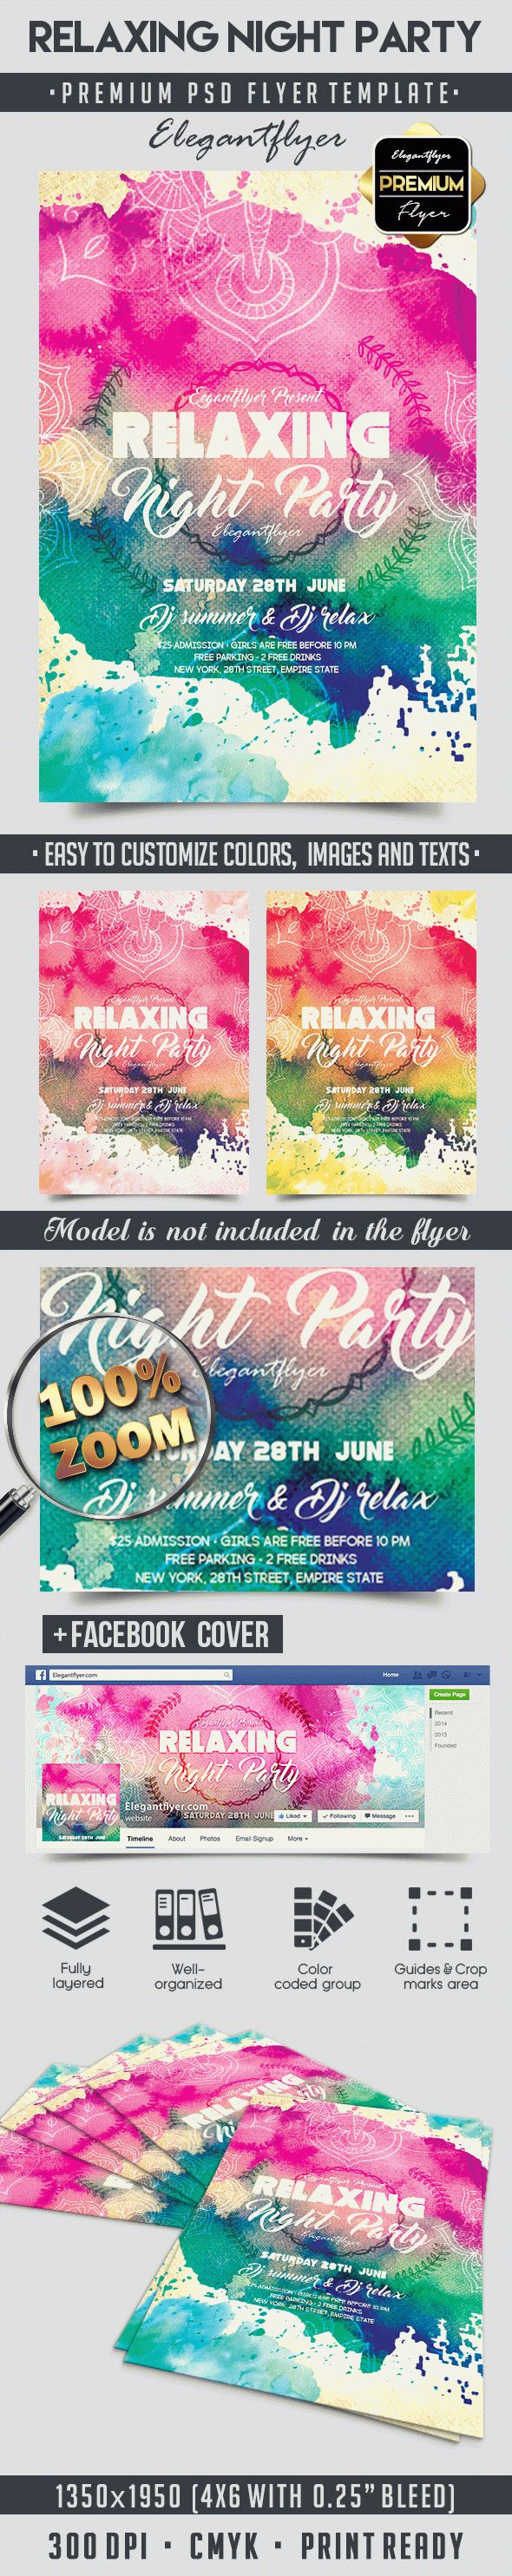 Relaxing Night Party – Flyer PSD Template